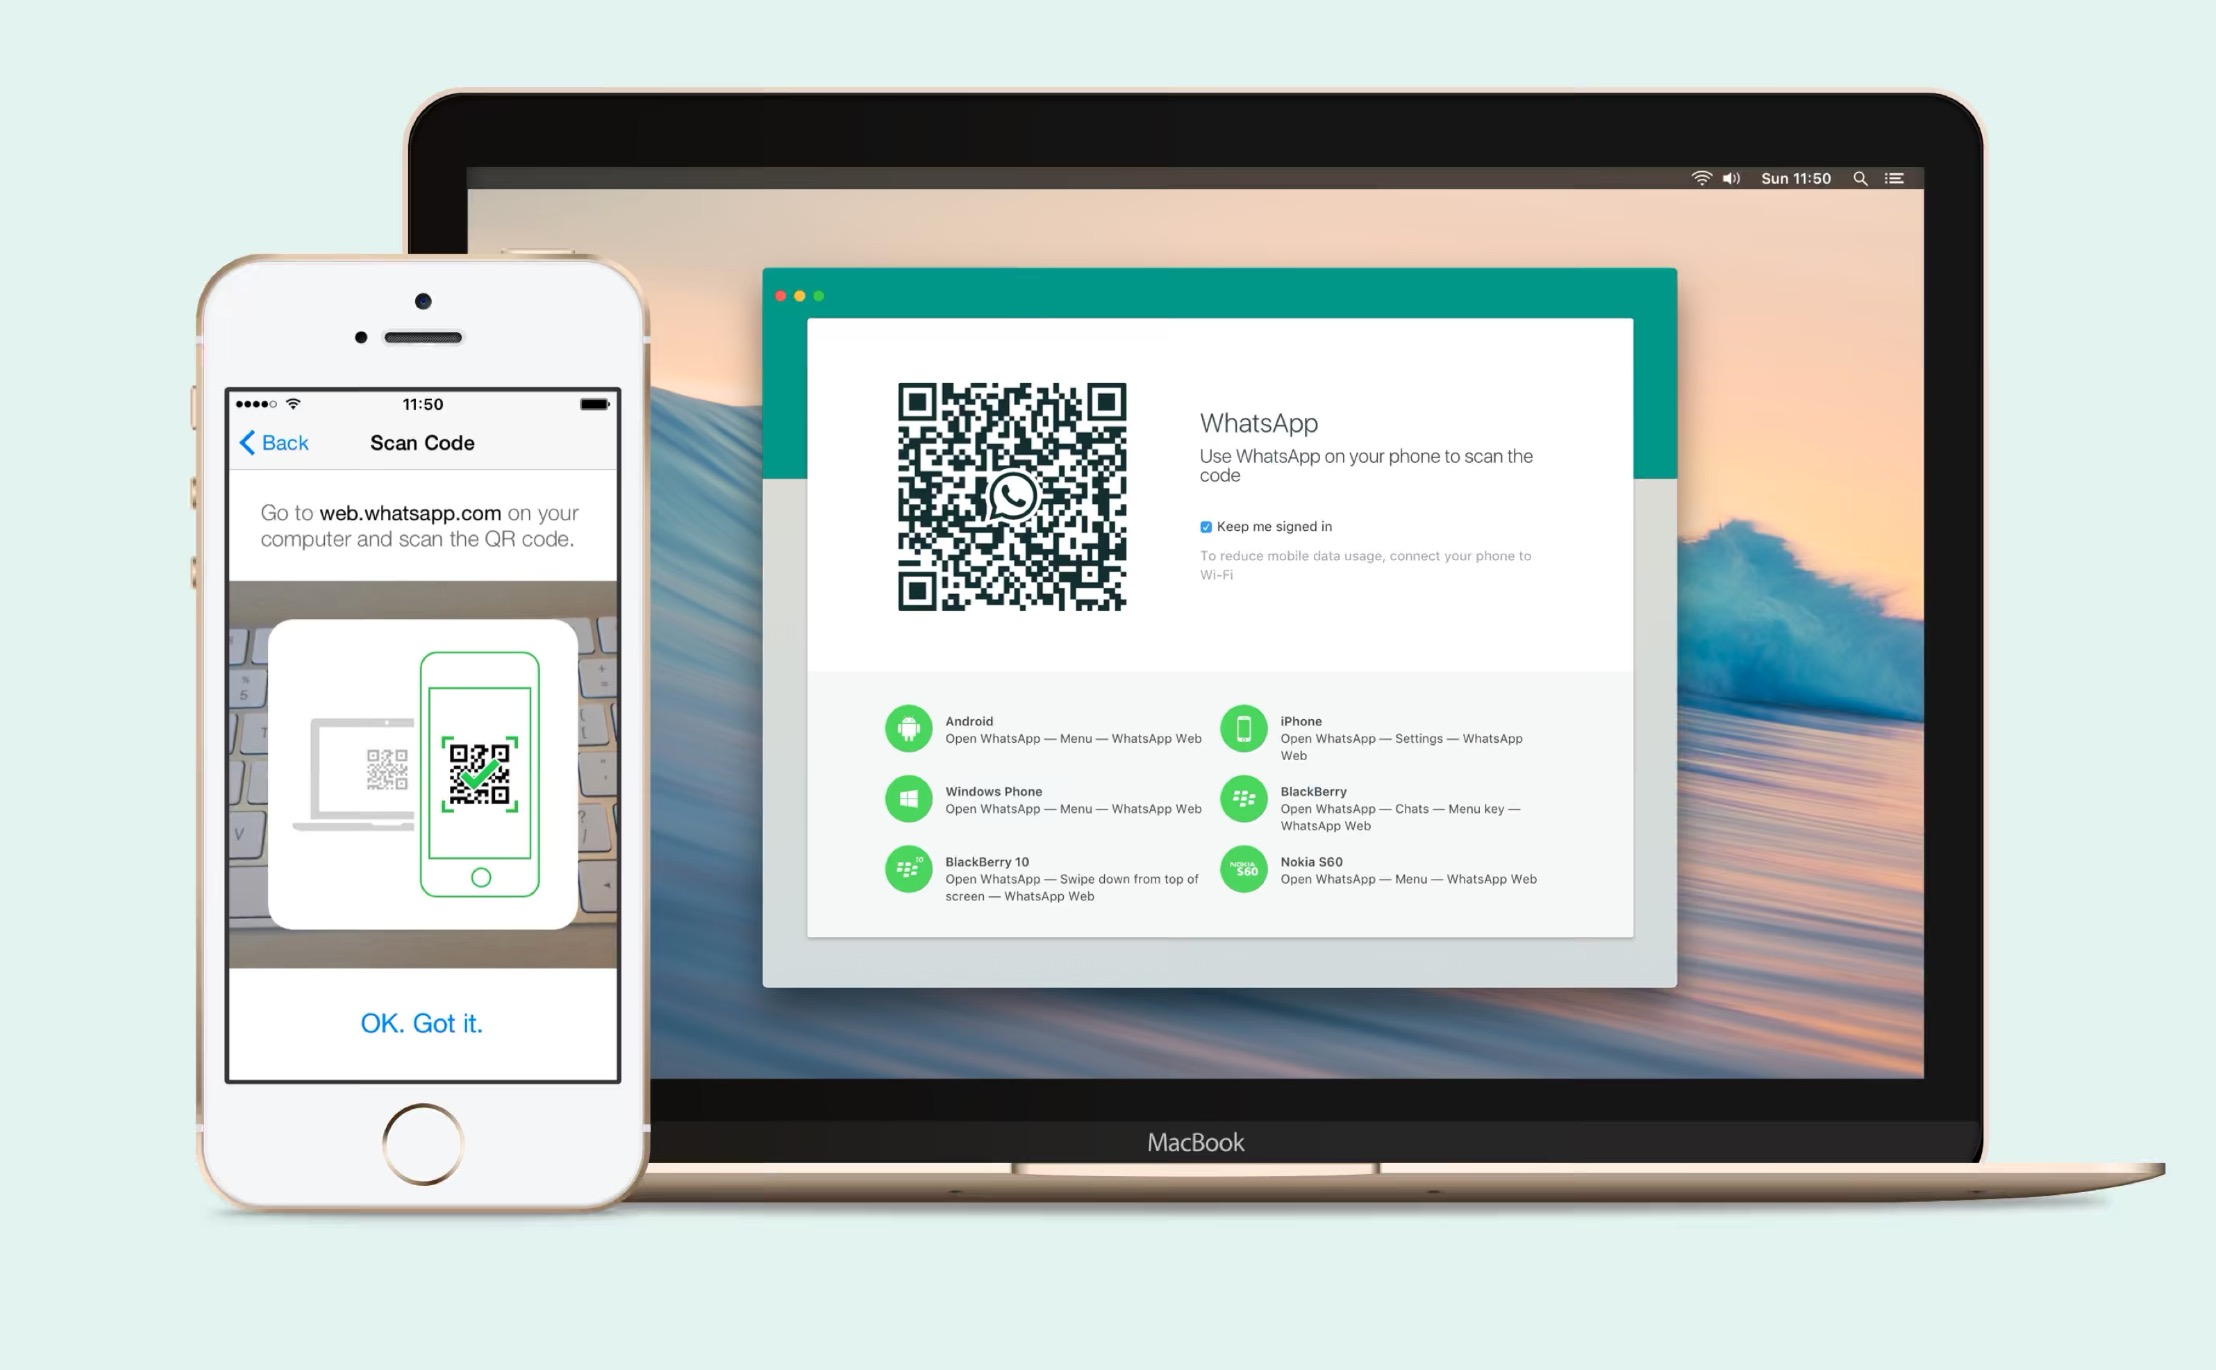 How To Use Whatsapp On The Desktop Web App And Ipad And How To Make Video Calls